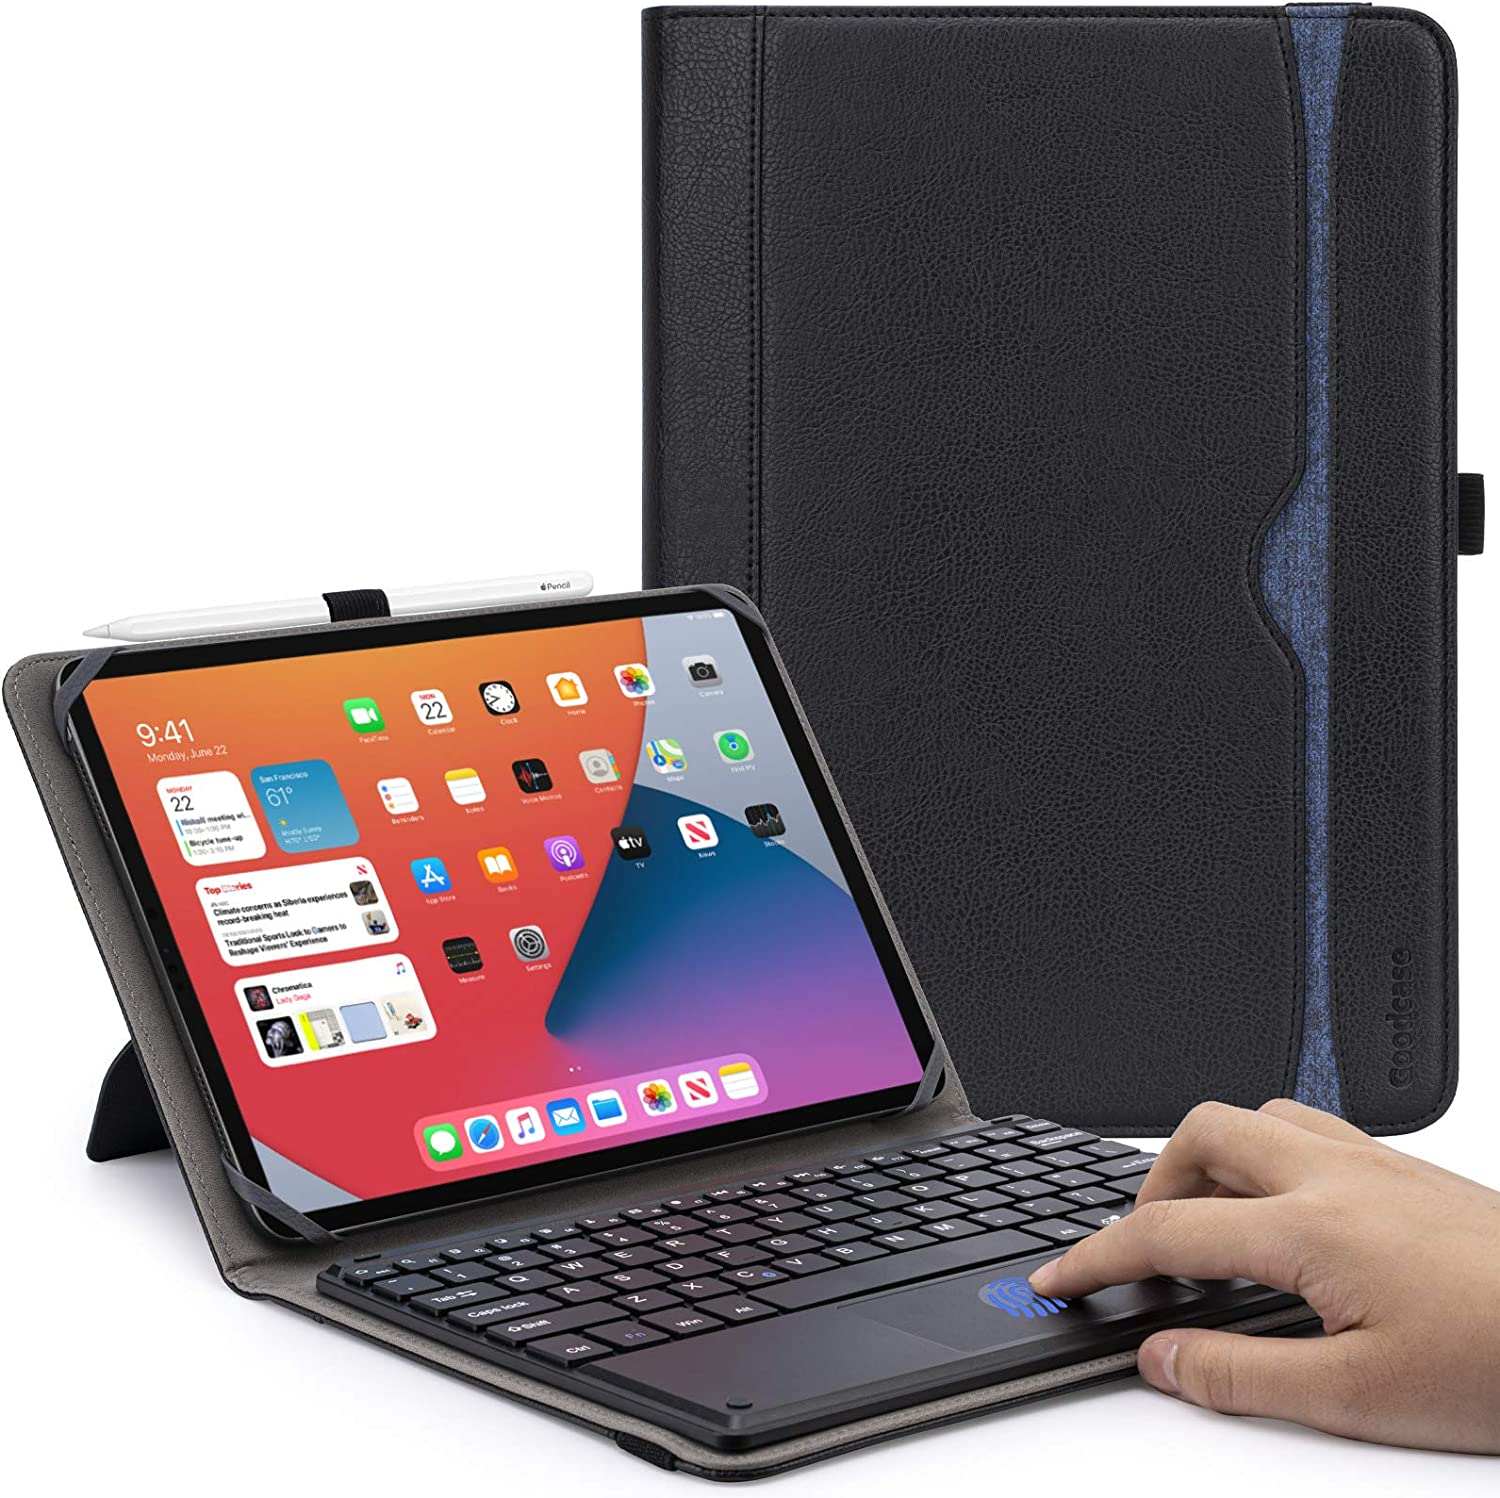 GoodCase Universal Tablet Keyboard Case, Protective Cover Stand Folio Case for 9-10.9 Inch Touchscreen Tablet, Slim Shell Lightweight Smart Cover with Magnetically Detachable Wireless Keyboard